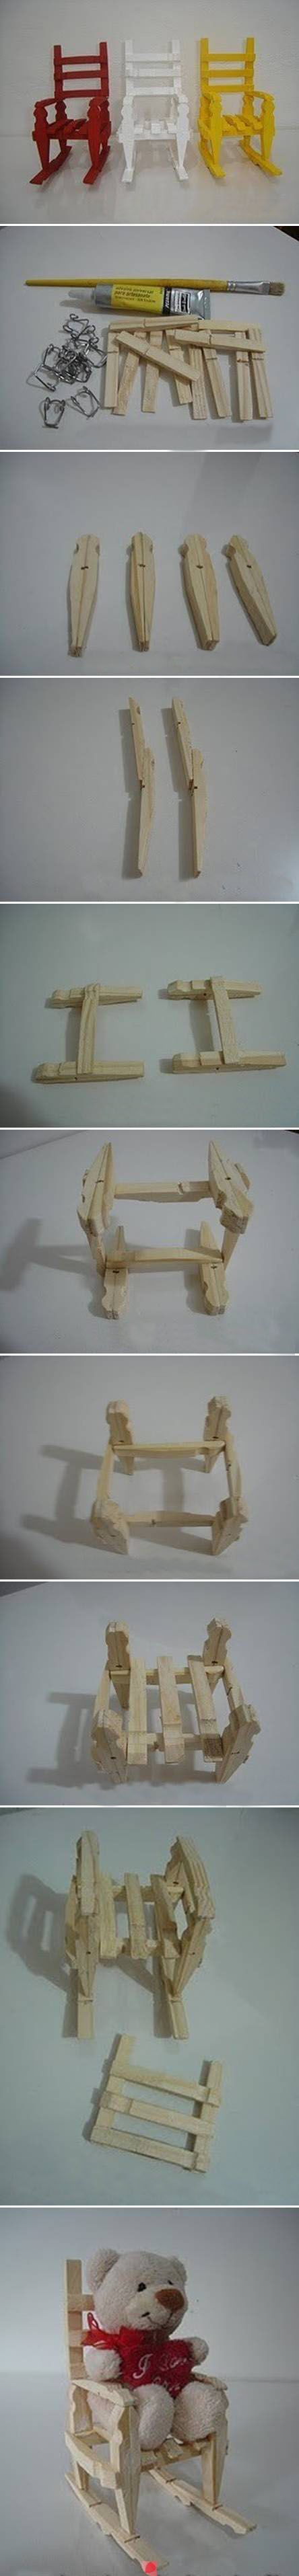 toy rocking chair from wooden clothes pegs